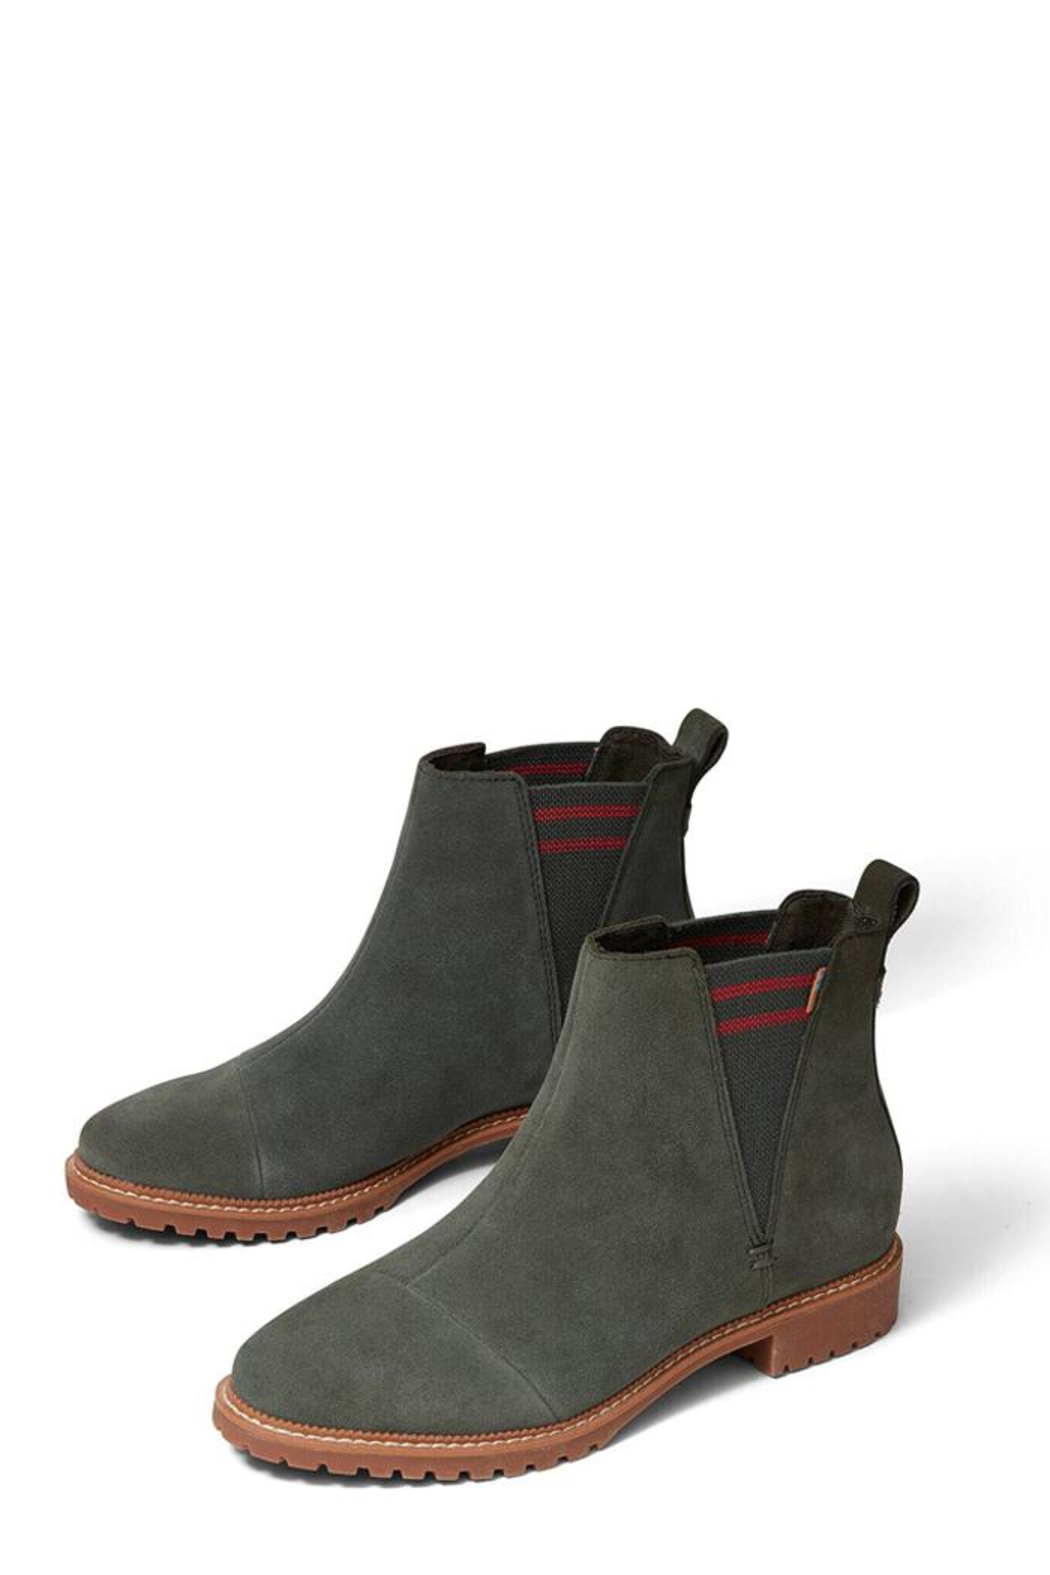 TOMS Suede Cleo Booties - Front Full Image